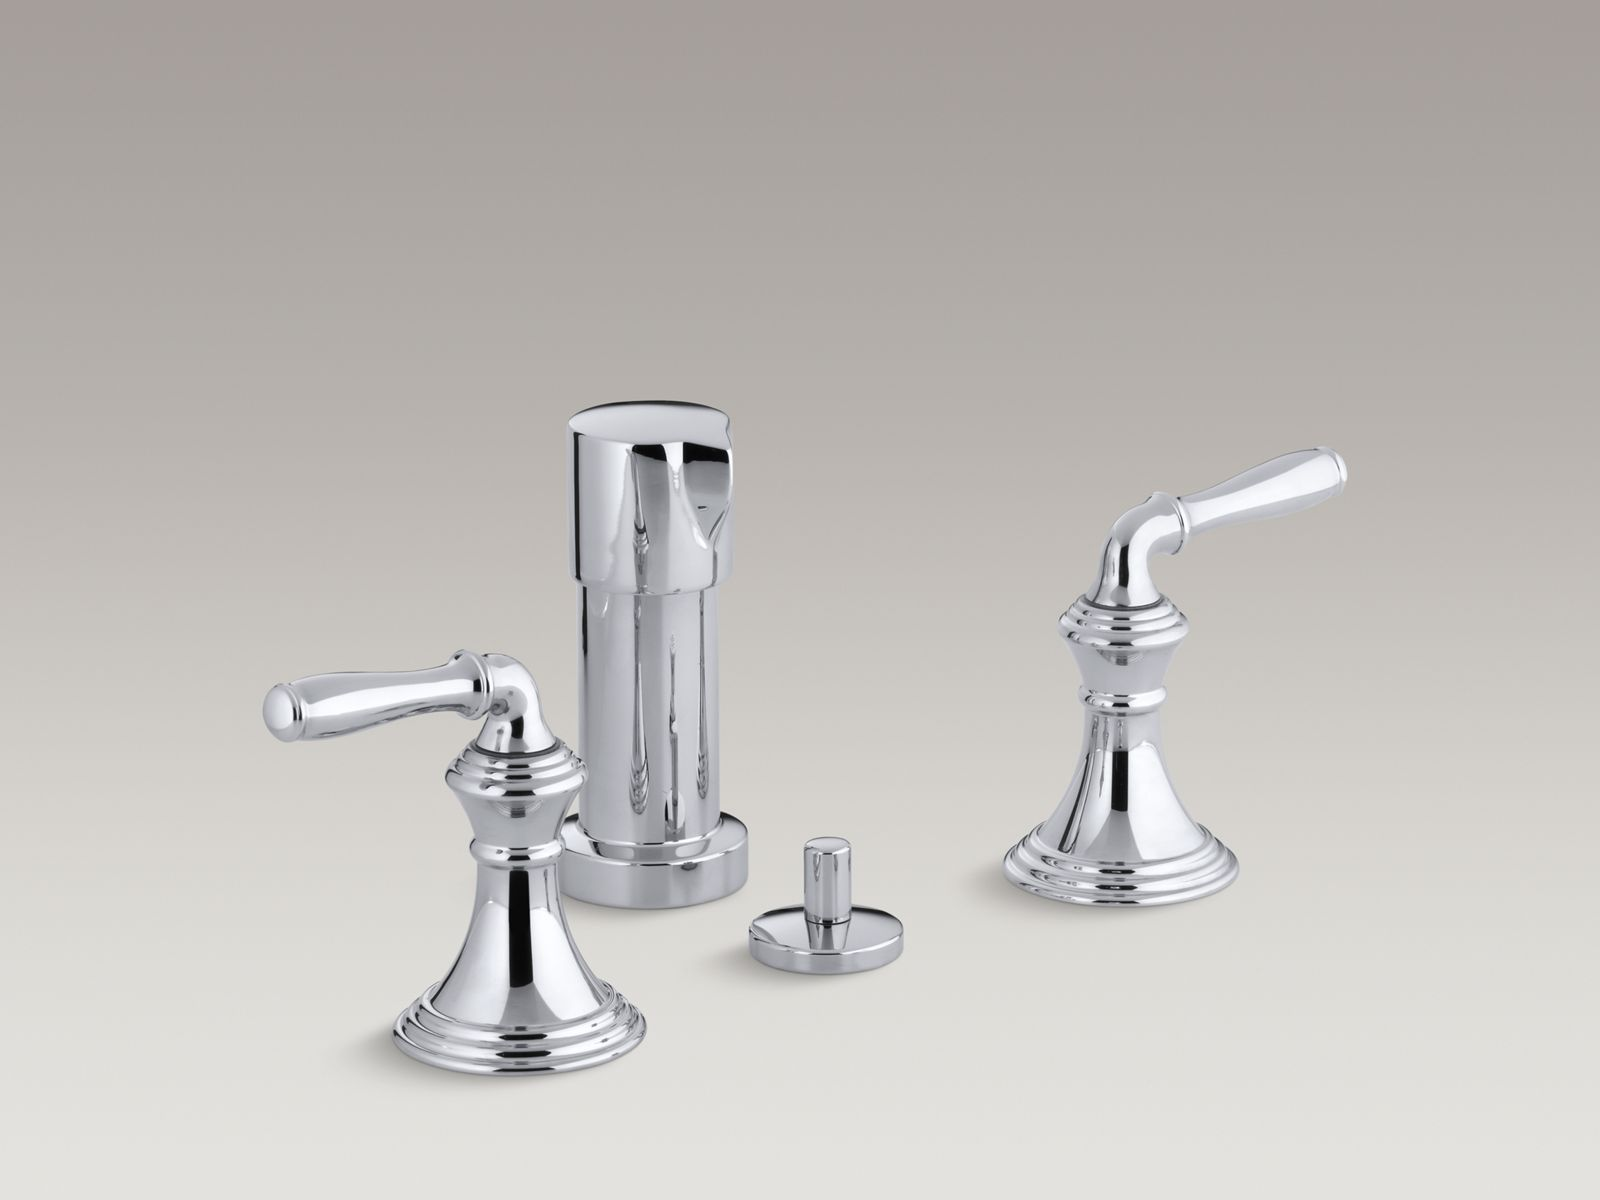 Devonshire® vertical spray bidet faucet with lever handles